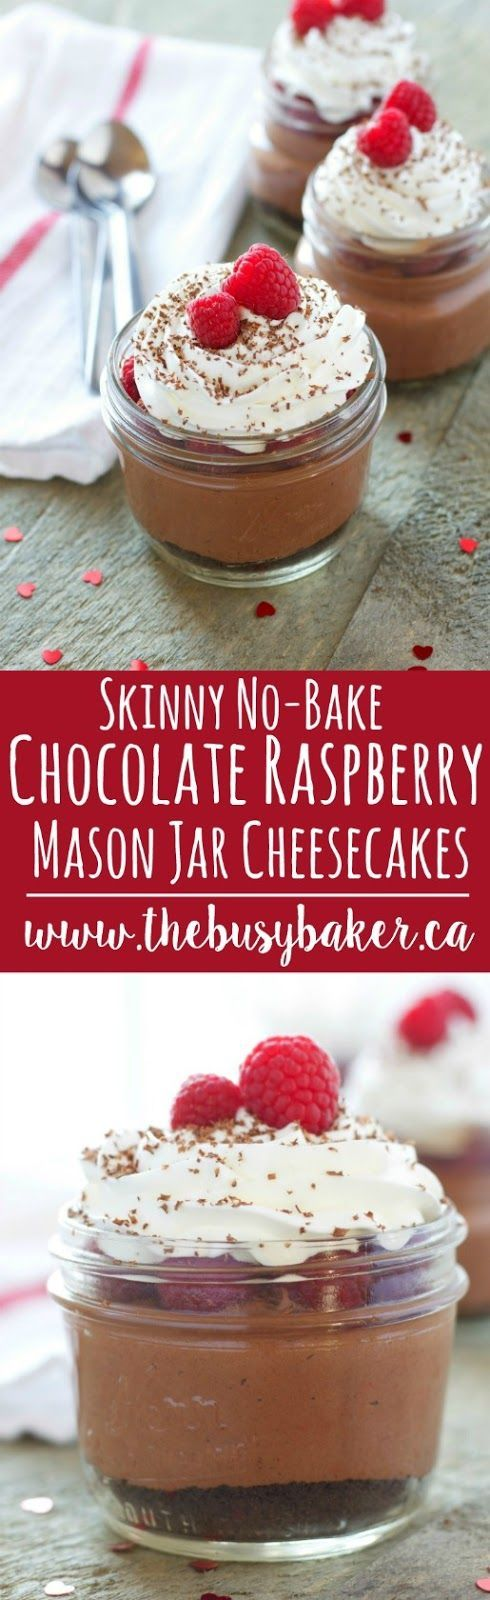 17 Best images about Yummy: Dessert on Pinterest | Apple ...